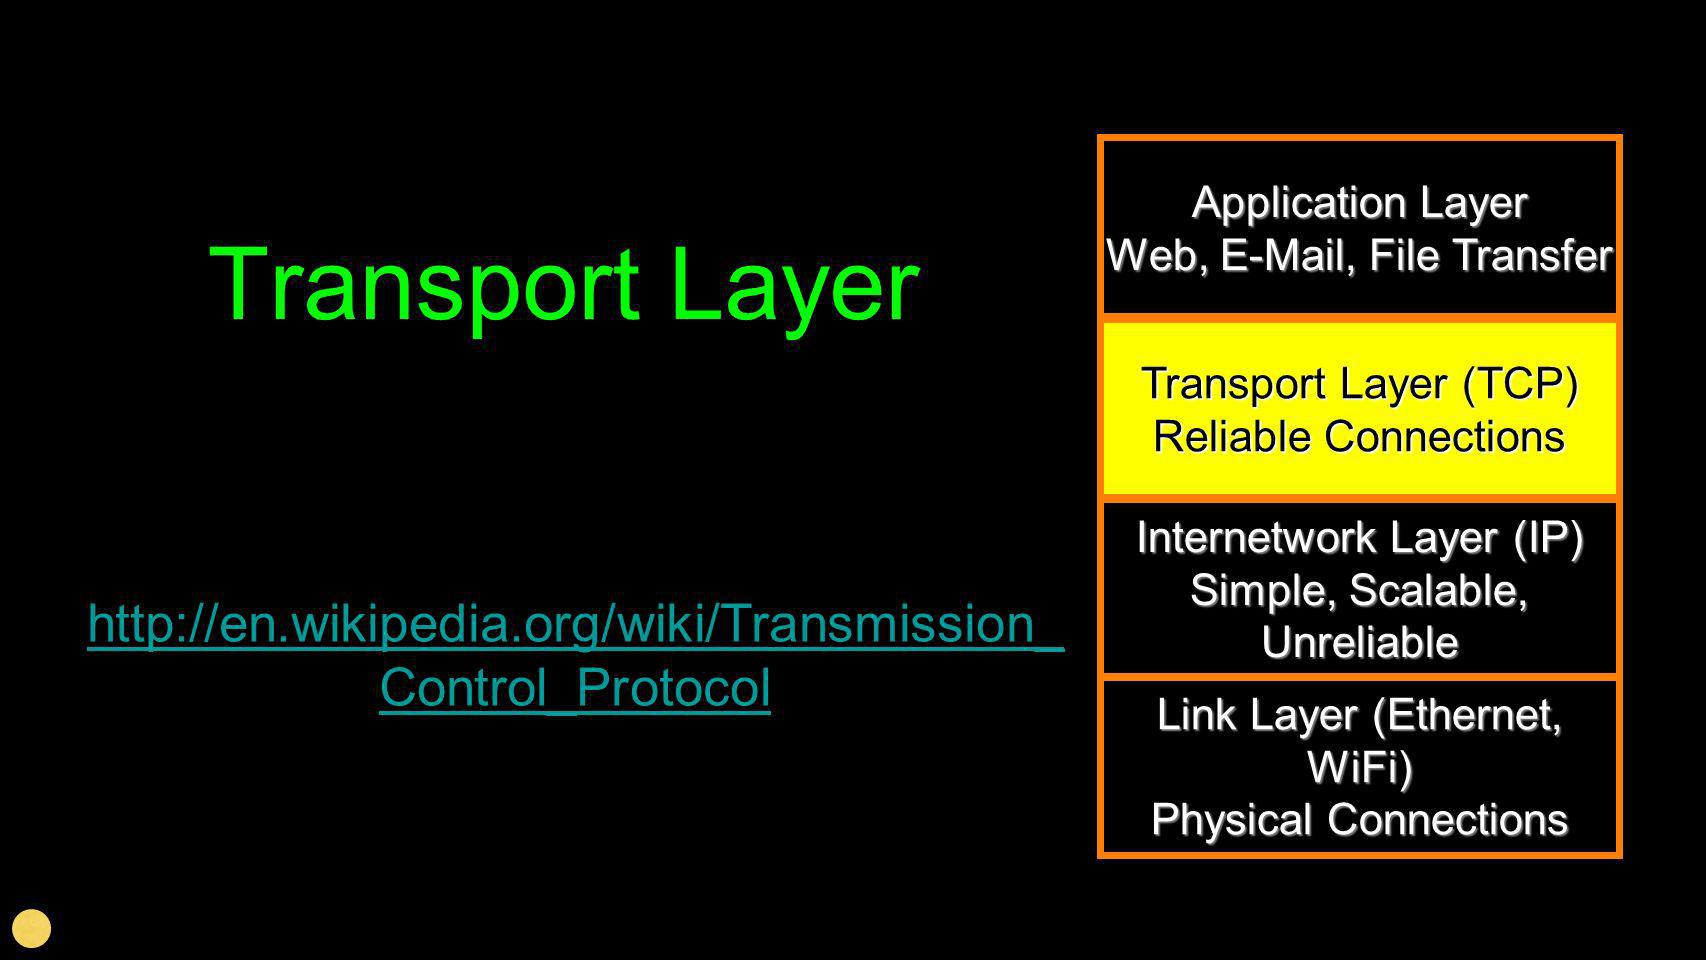 Transport LayerApplication Layer. Web, E-Mail, File Transfer. Transport Layer (TCP) Reliable Connections.